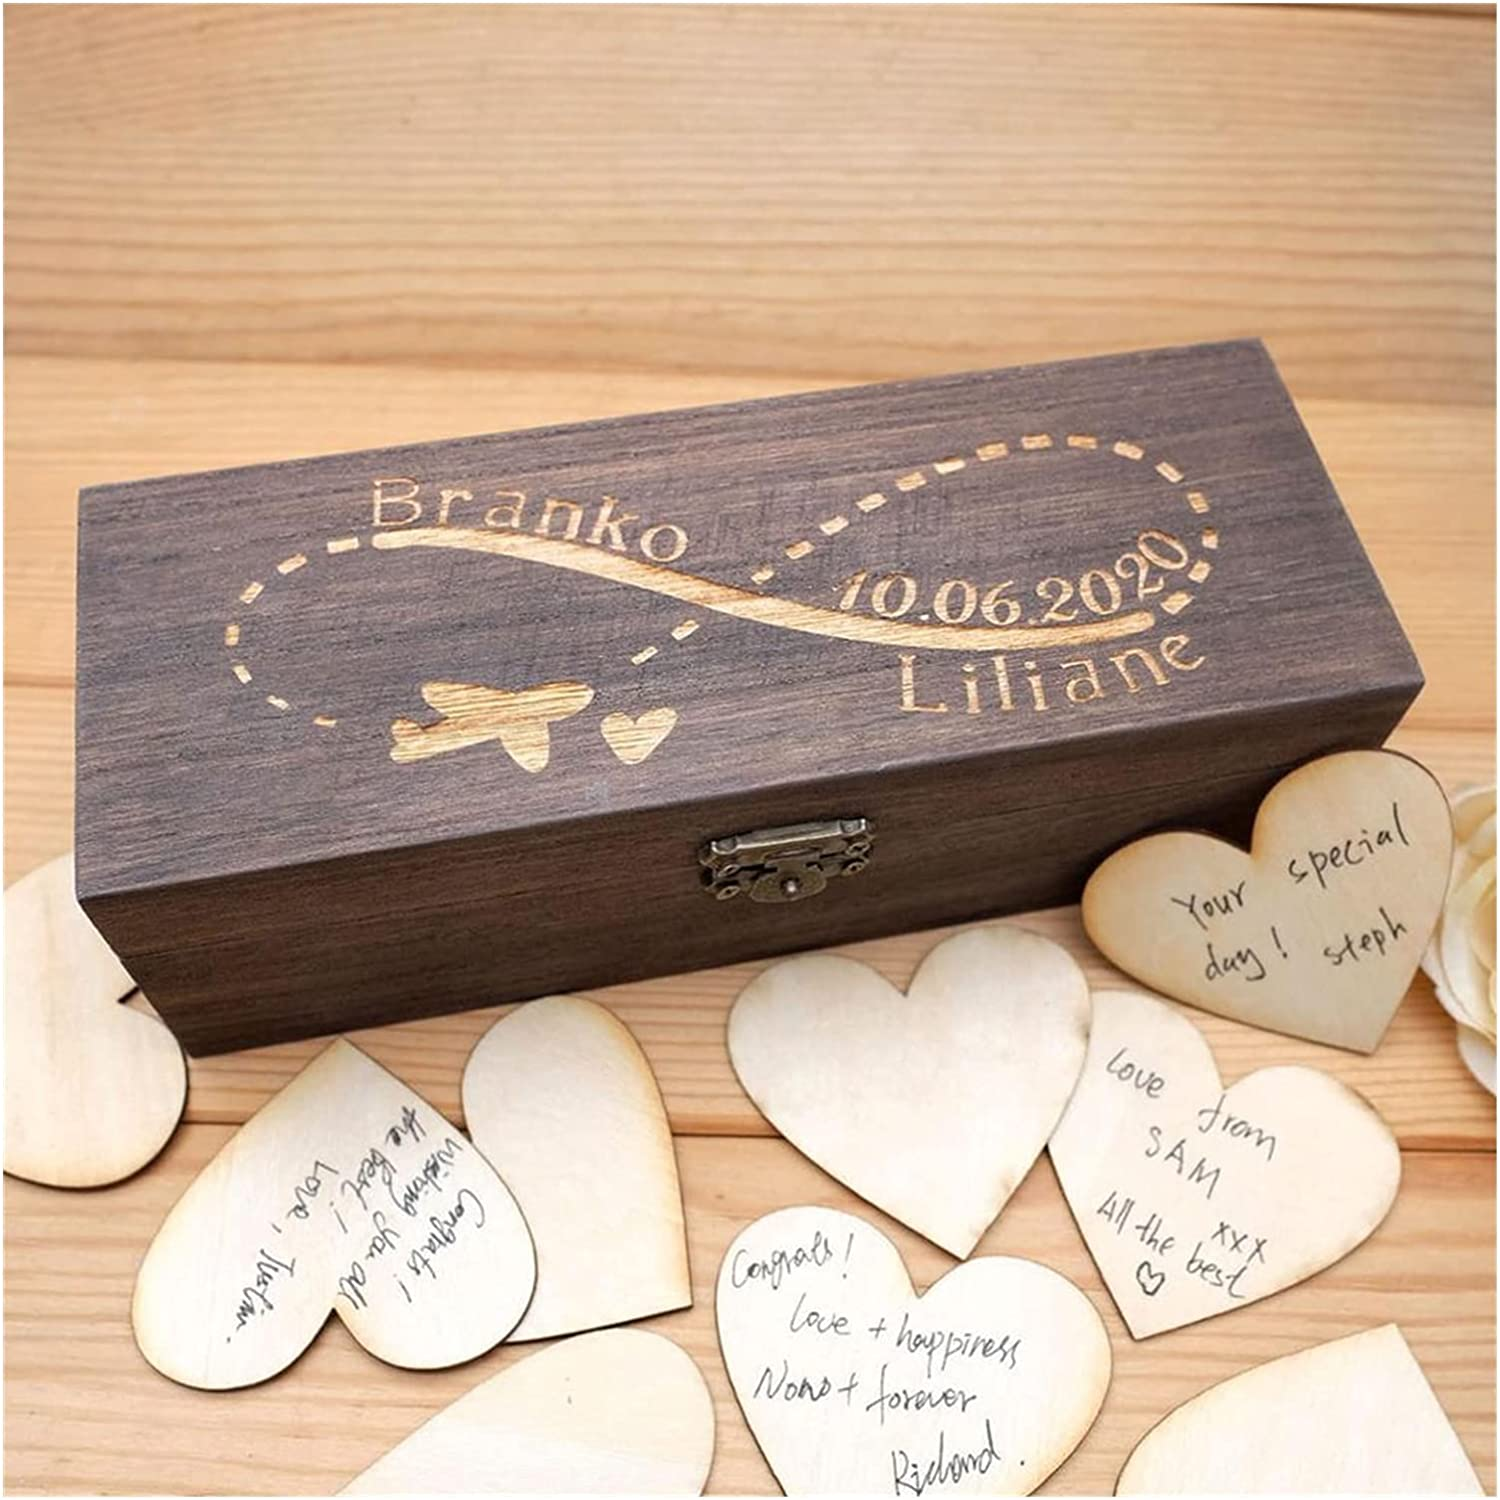 HUMINGG Wedding 4 years Tampa Mall warranty Guest Book Guestbook Drop Personalized H